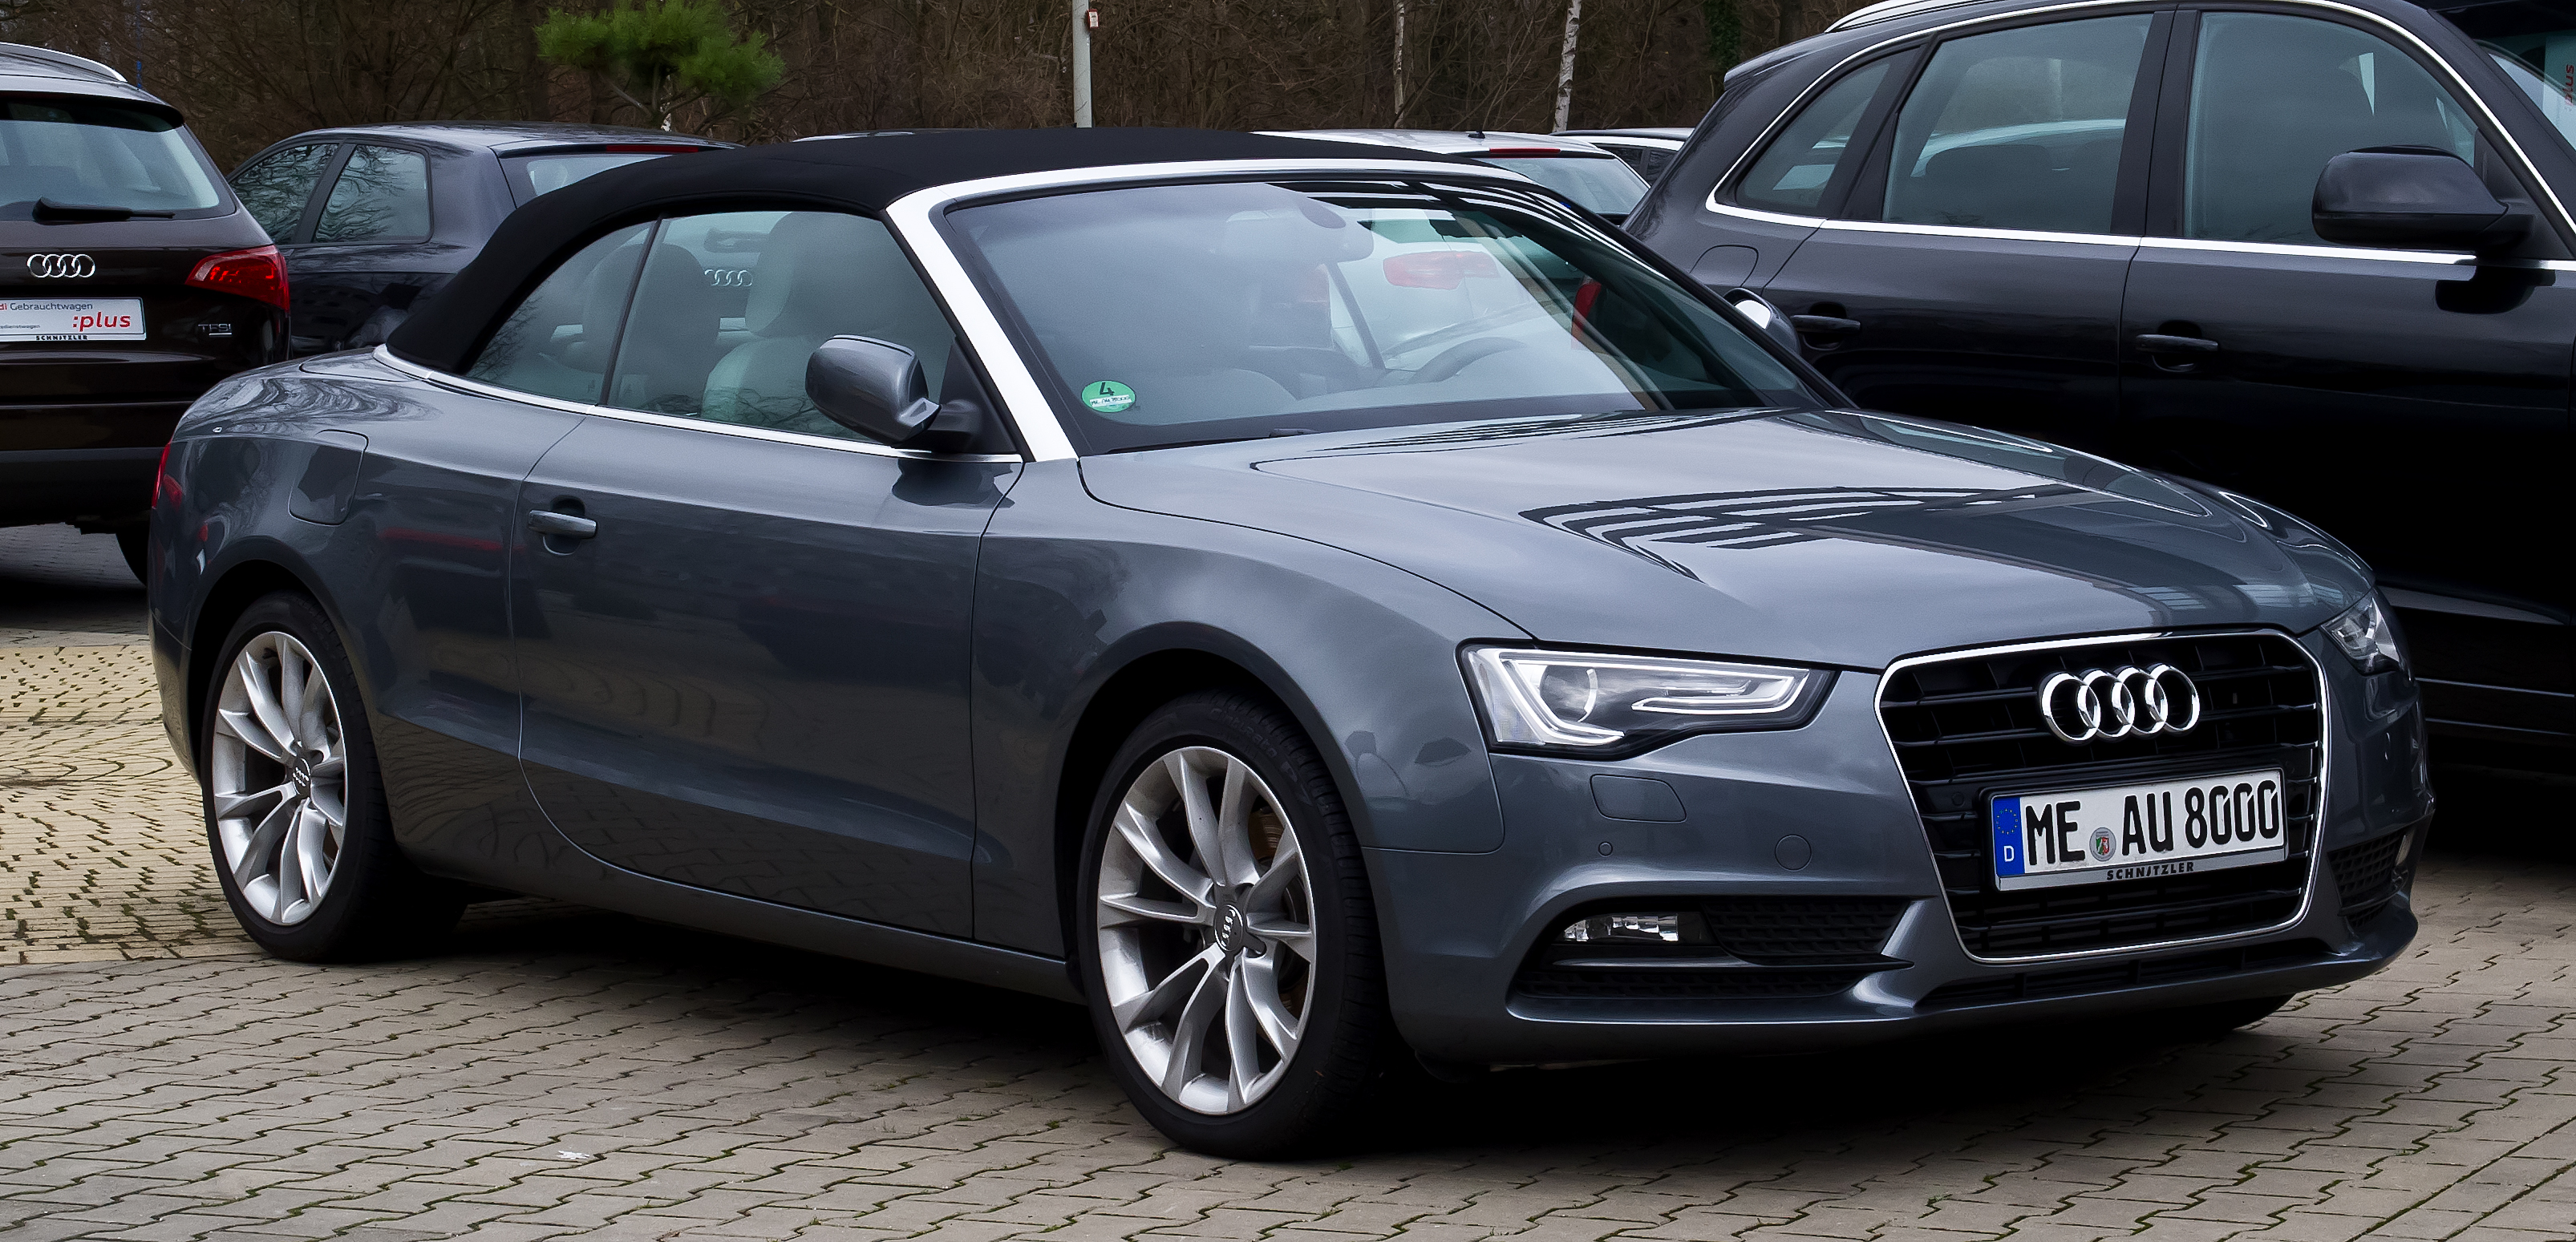 Audi Build Your Own >> File:Audi A5 Cabriolet TFSI (Facelift) – Frontansicht, 31. Dezember 2012, Hilden.jpg - Wikimedia ...